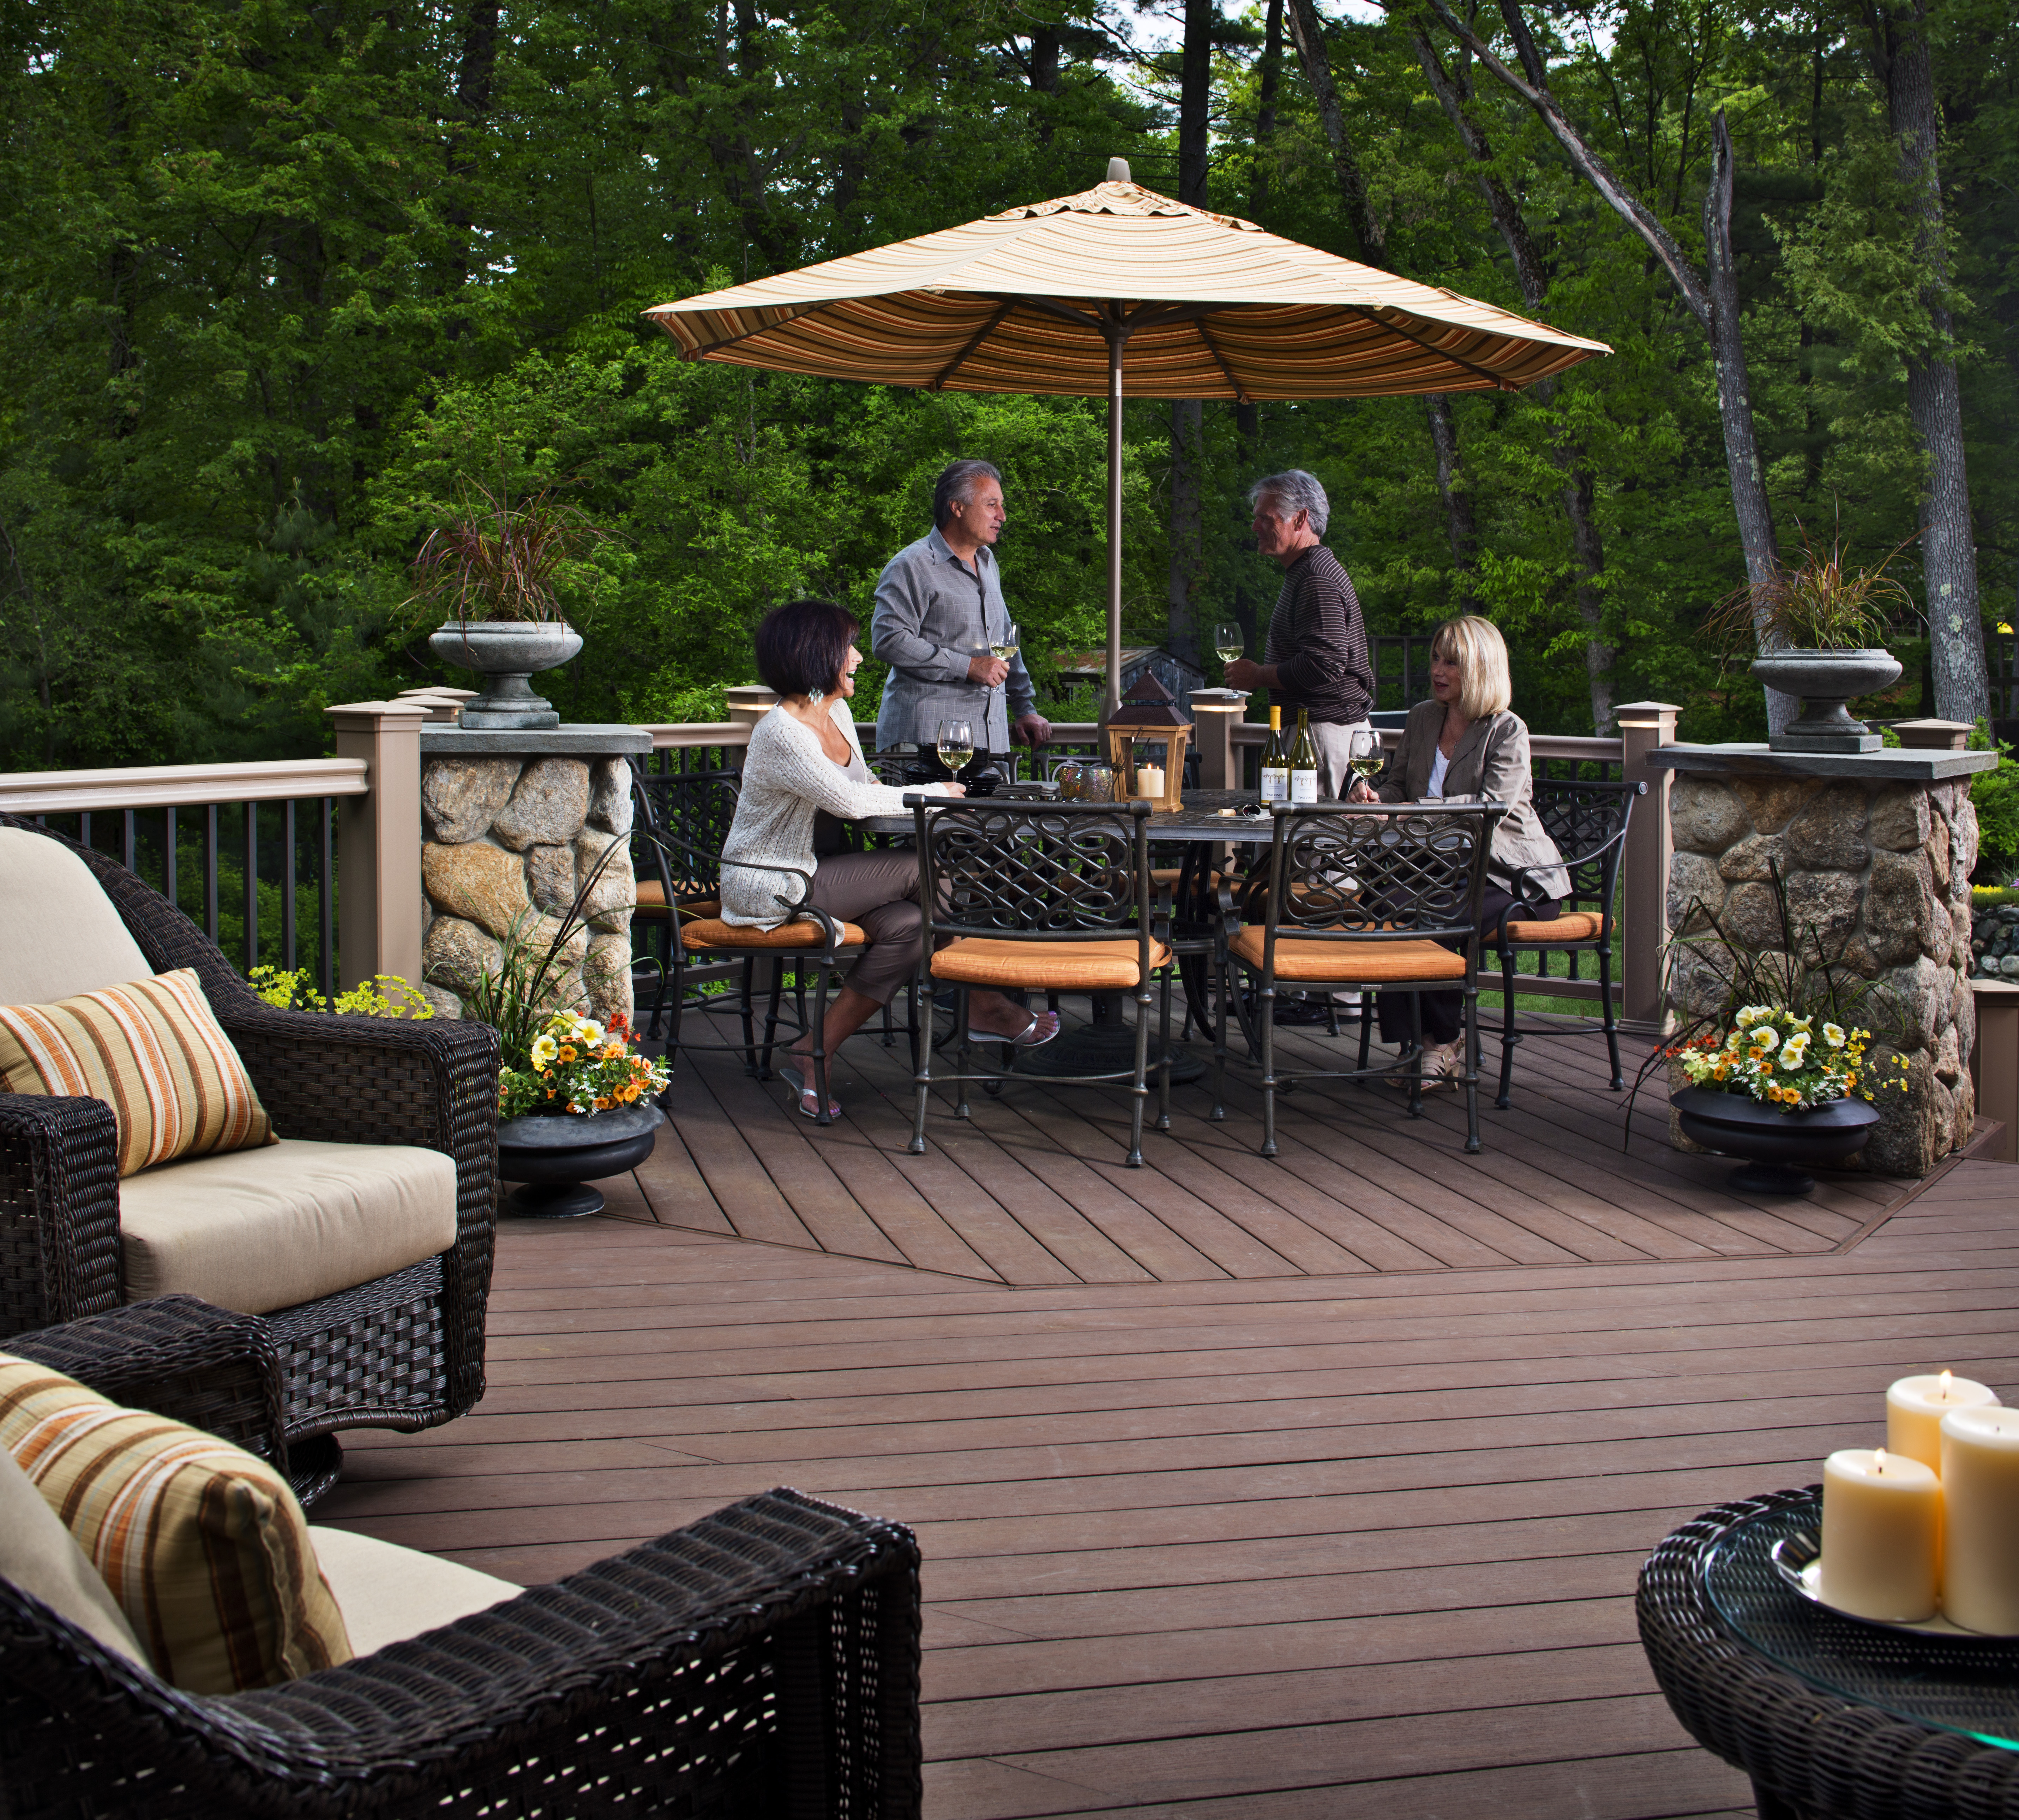 Deck amp patio furniture are often neglected when hiring a pressure - Deck Amp Patio Furniture Are Often Neglected When Hiring A Pressure 17